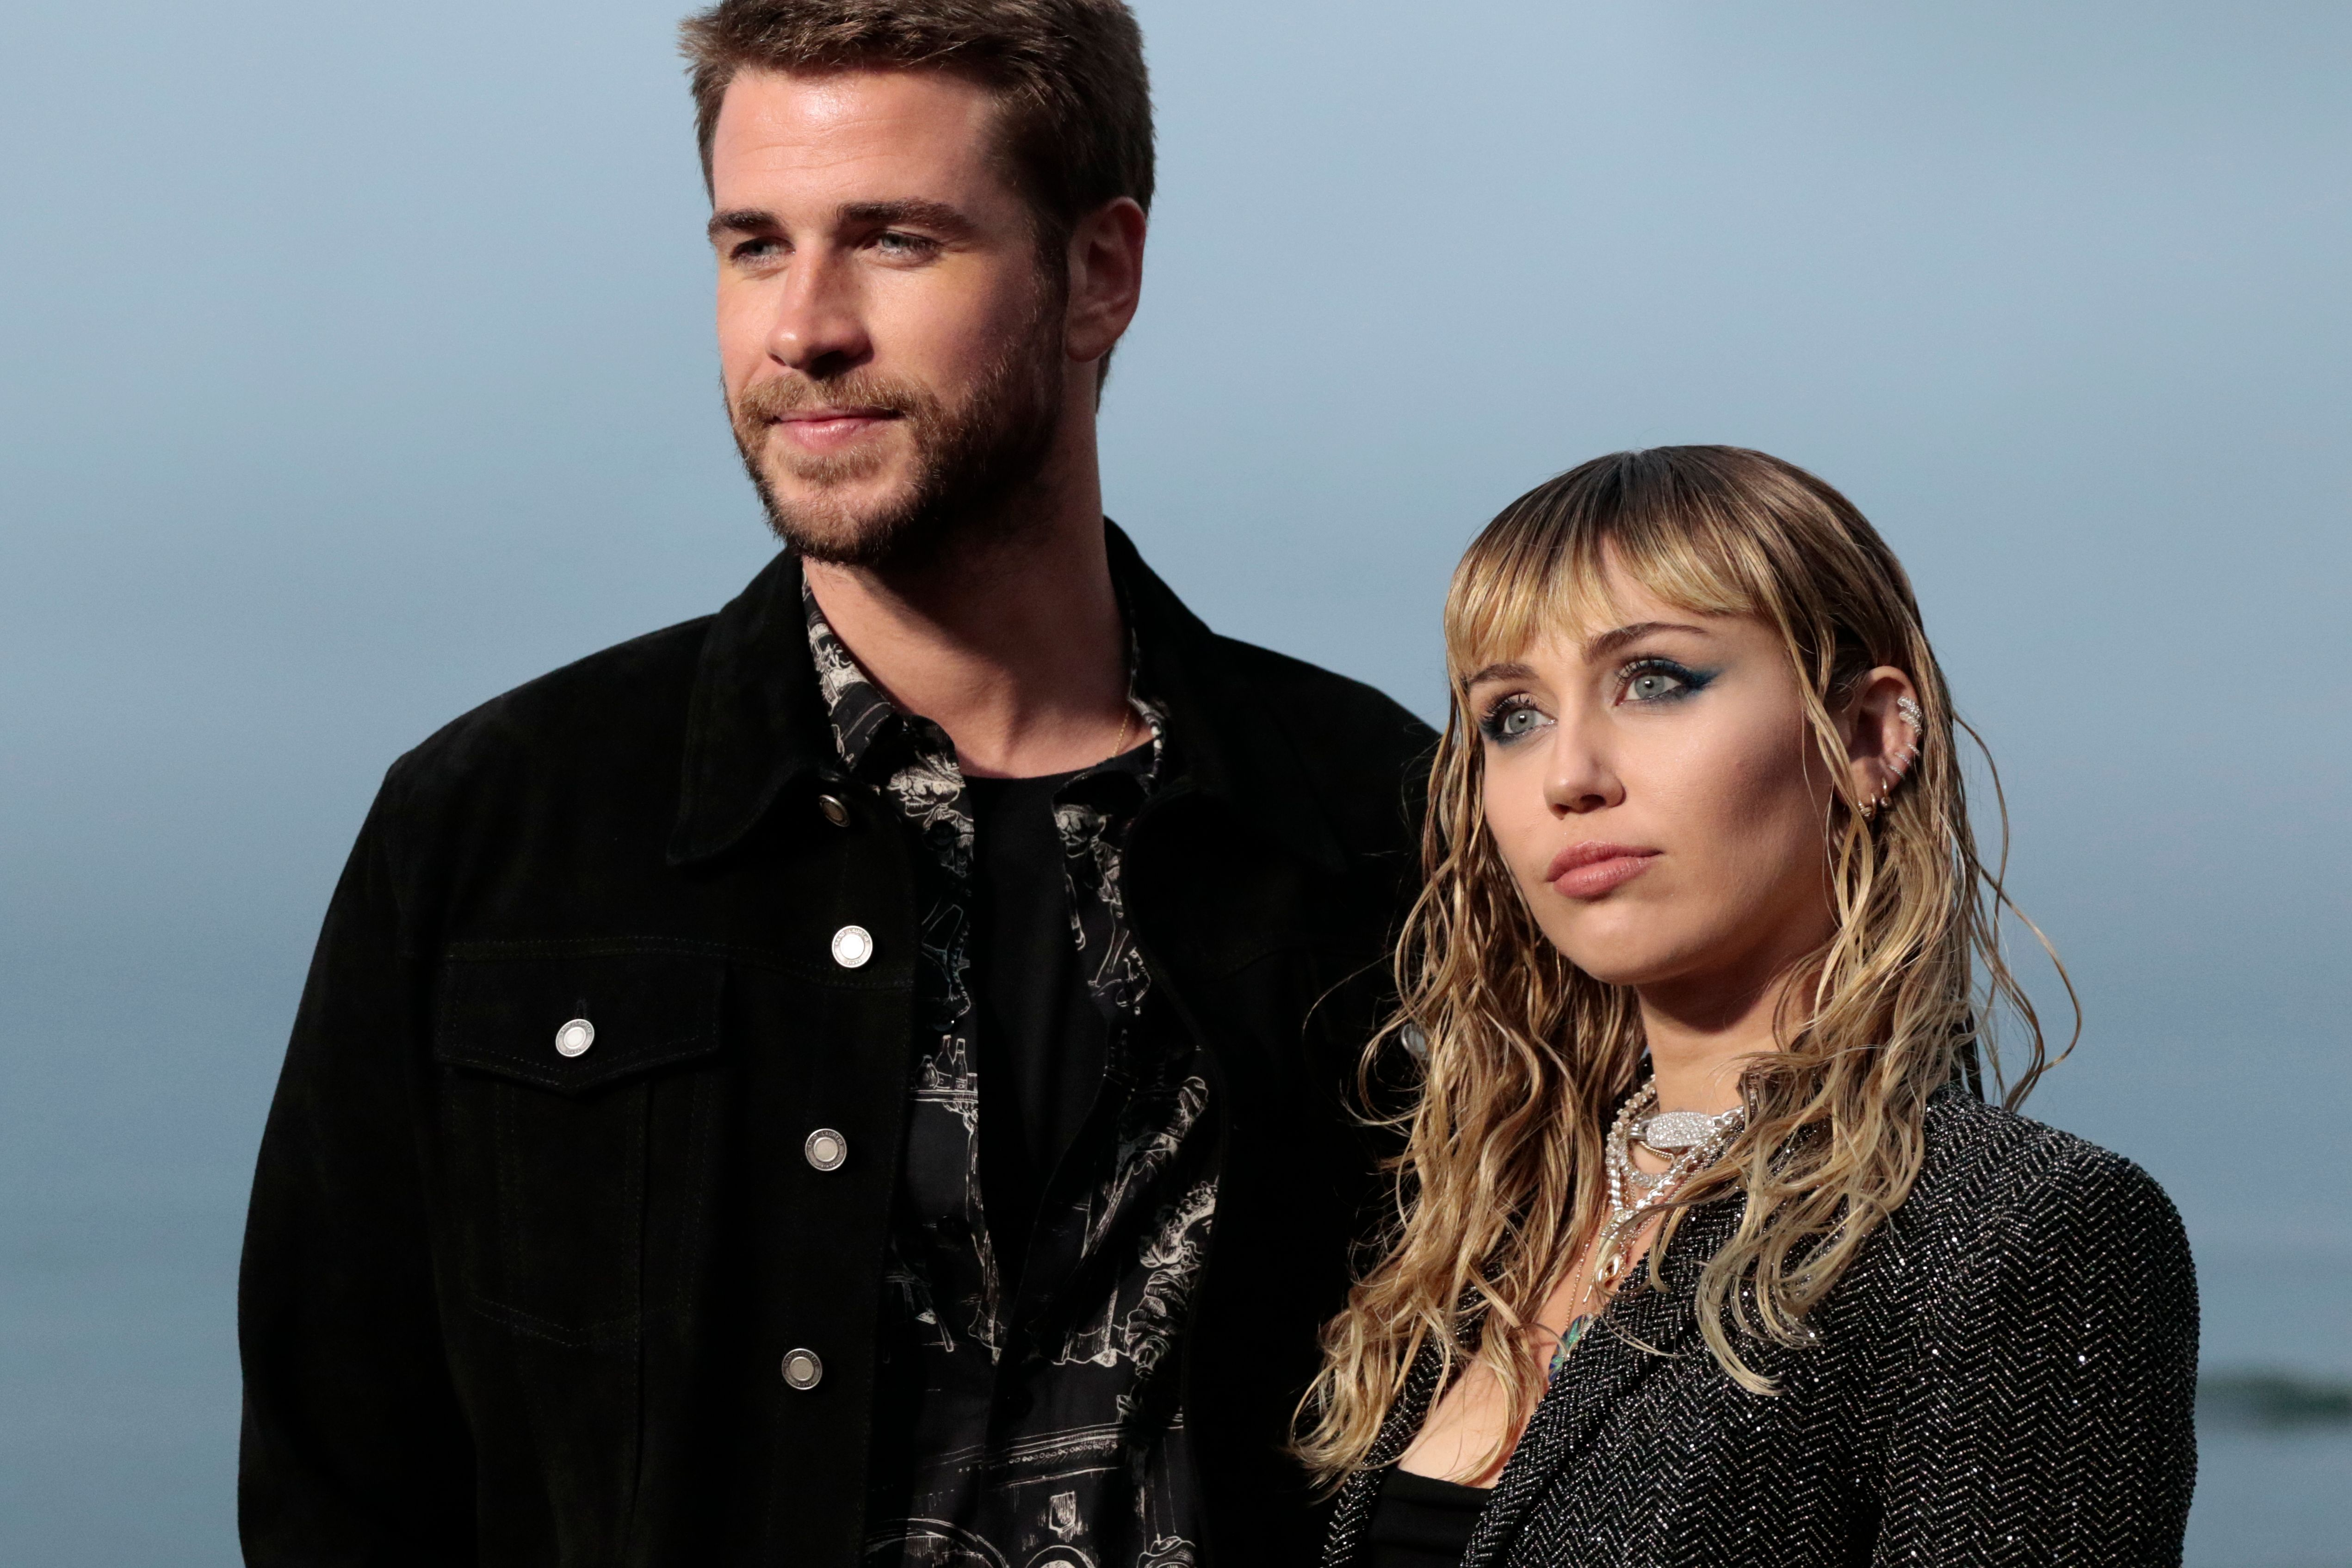 Miley Cyrus addresses her split with Liam Hemsworth in emotional post